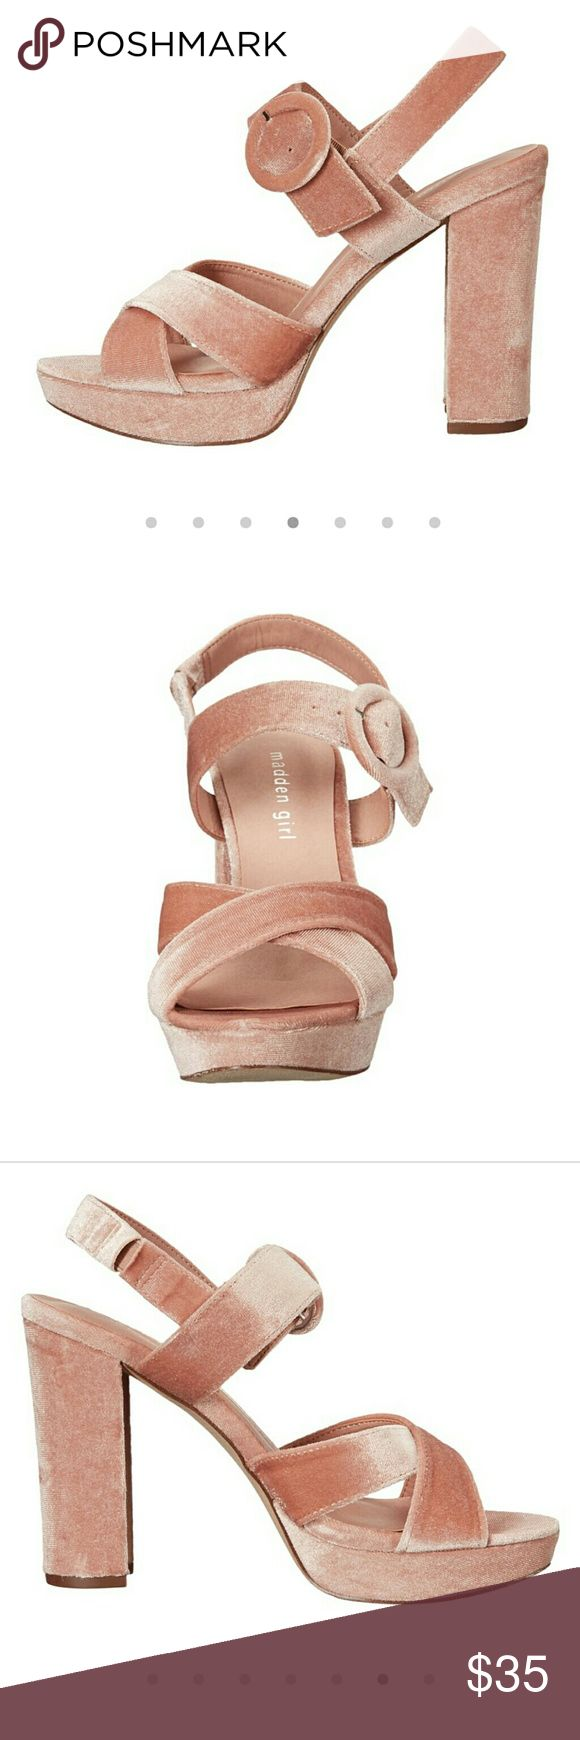 "NWOT 4.5"" heel Blush Velvet Madden Girl Heels Please see last picture. Super adorable for this season. Offers welcome. NWOT Steve Madden Shoes Heels"